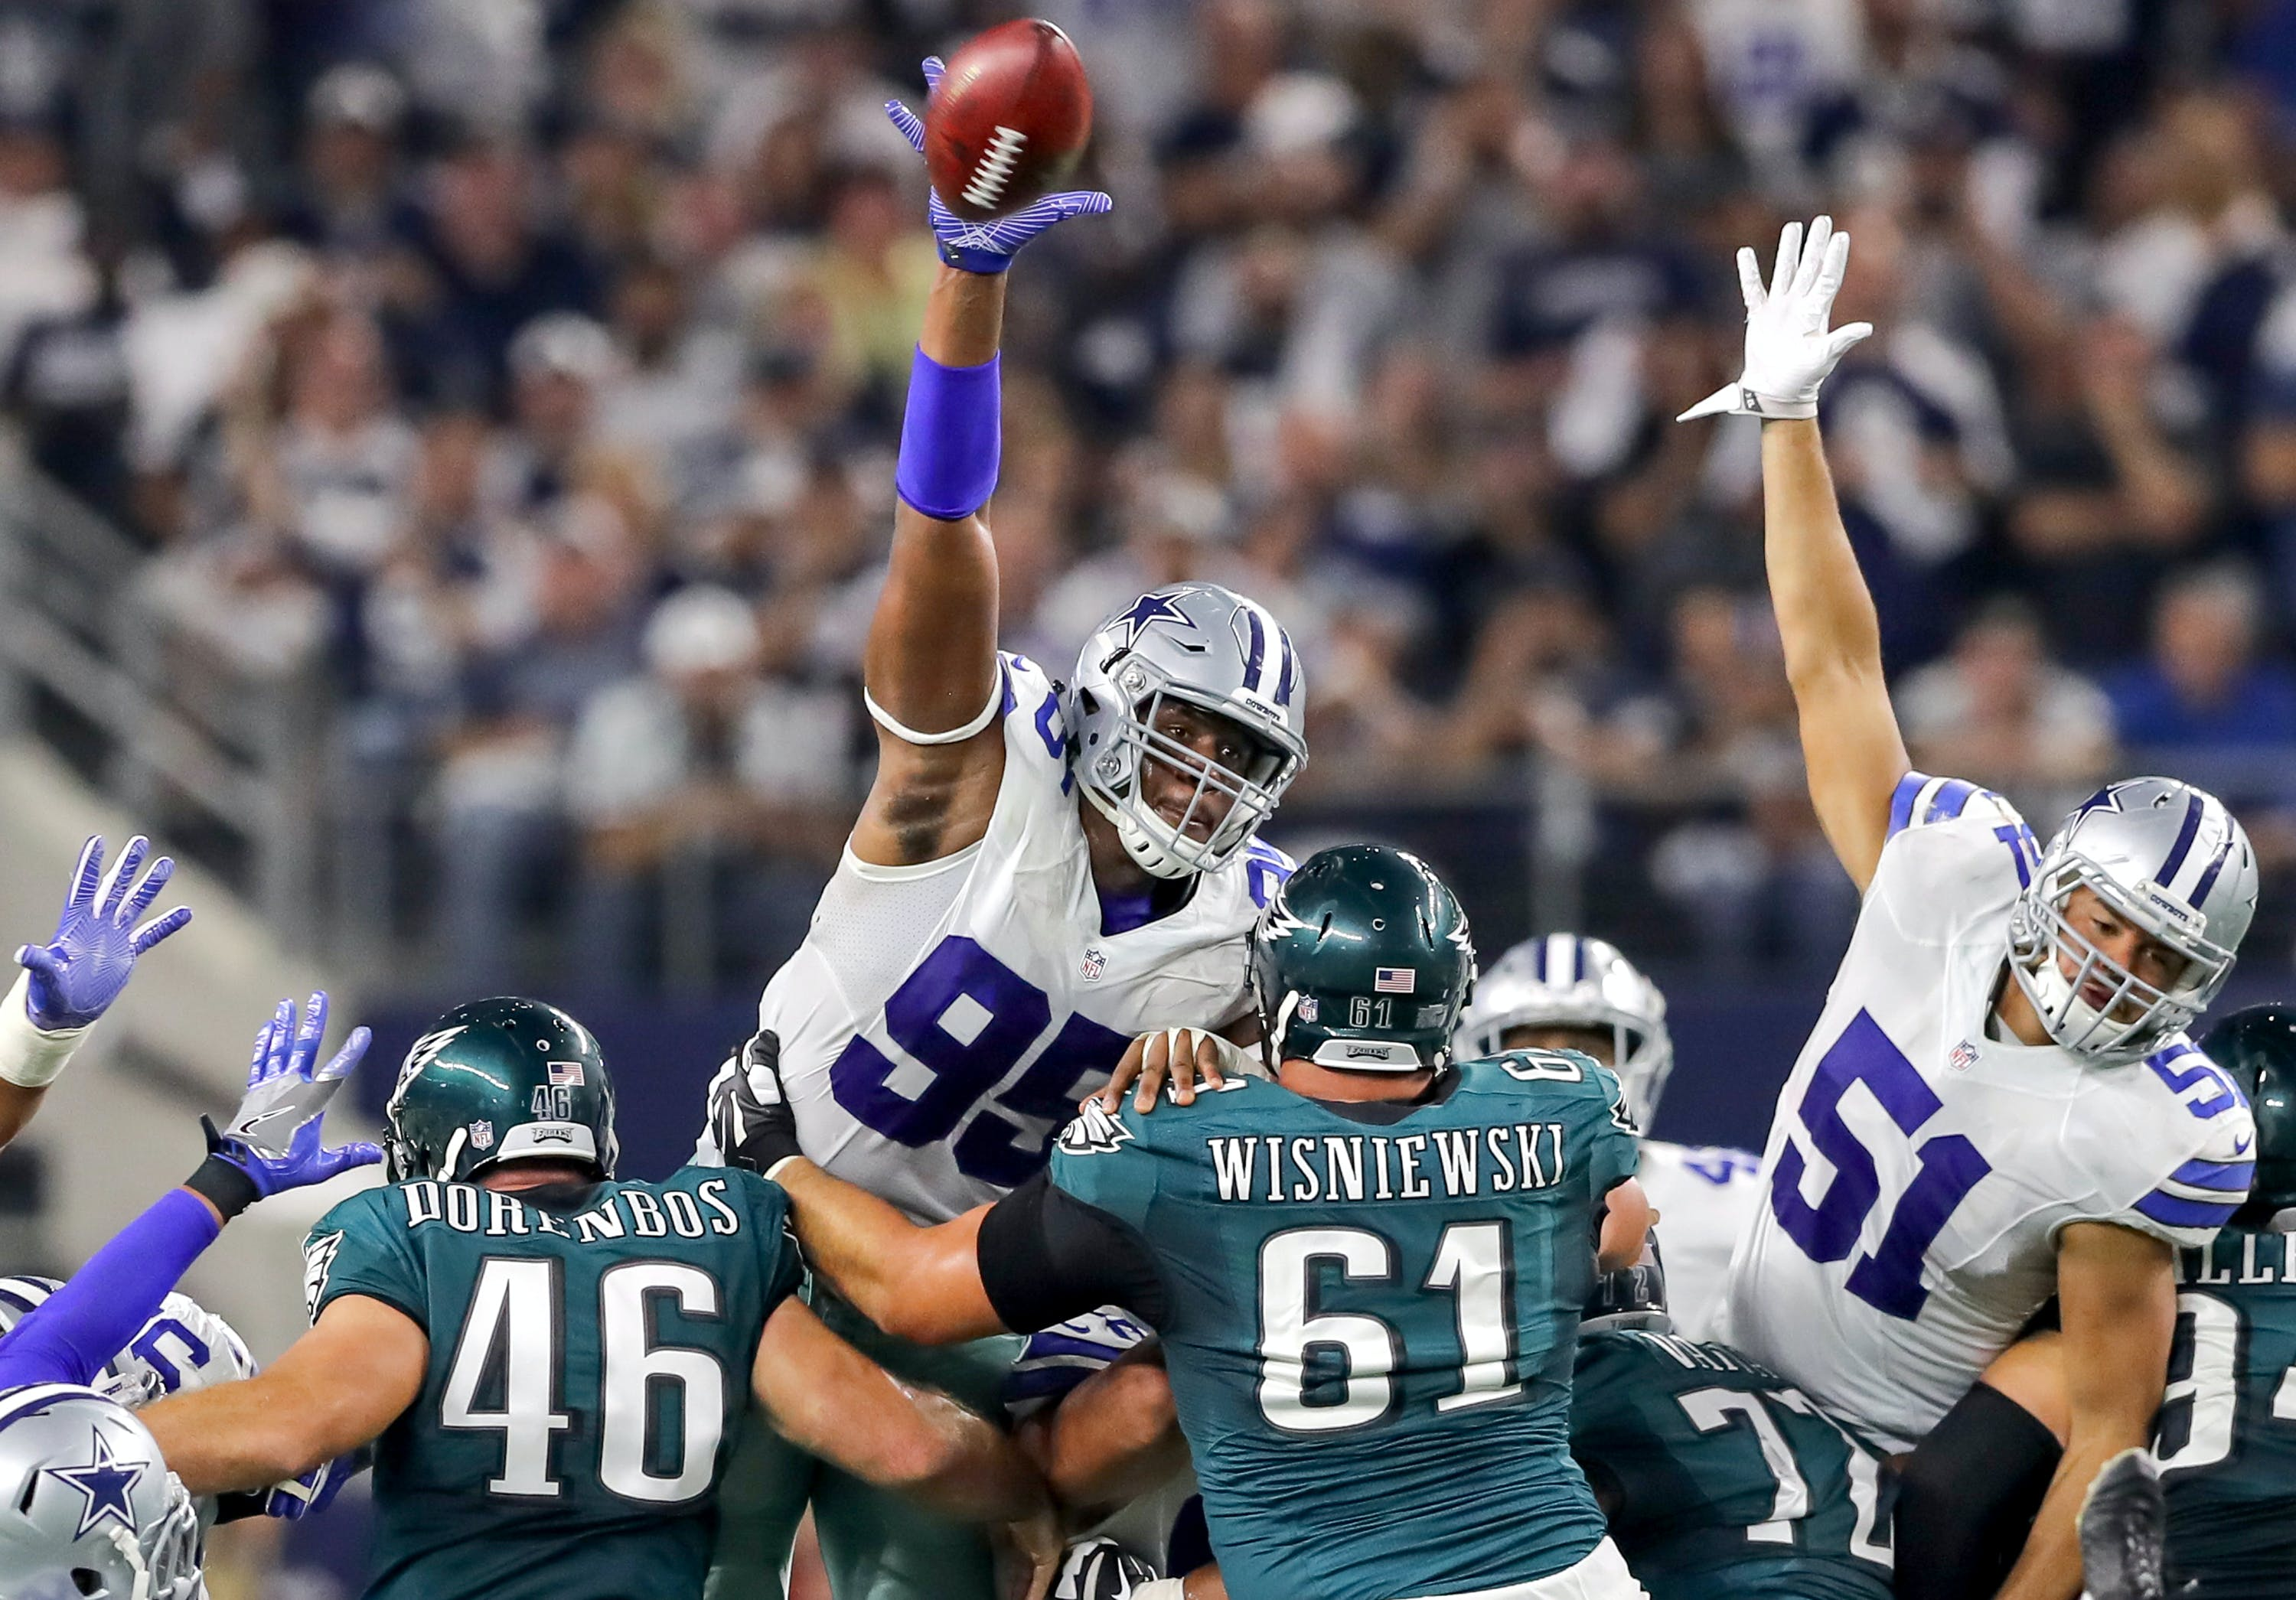 Every game you seen me play in I was medicated says Cowboys David Irving 0 Hops Discovered in India Could Help Bring Truly Legal CBD to Market